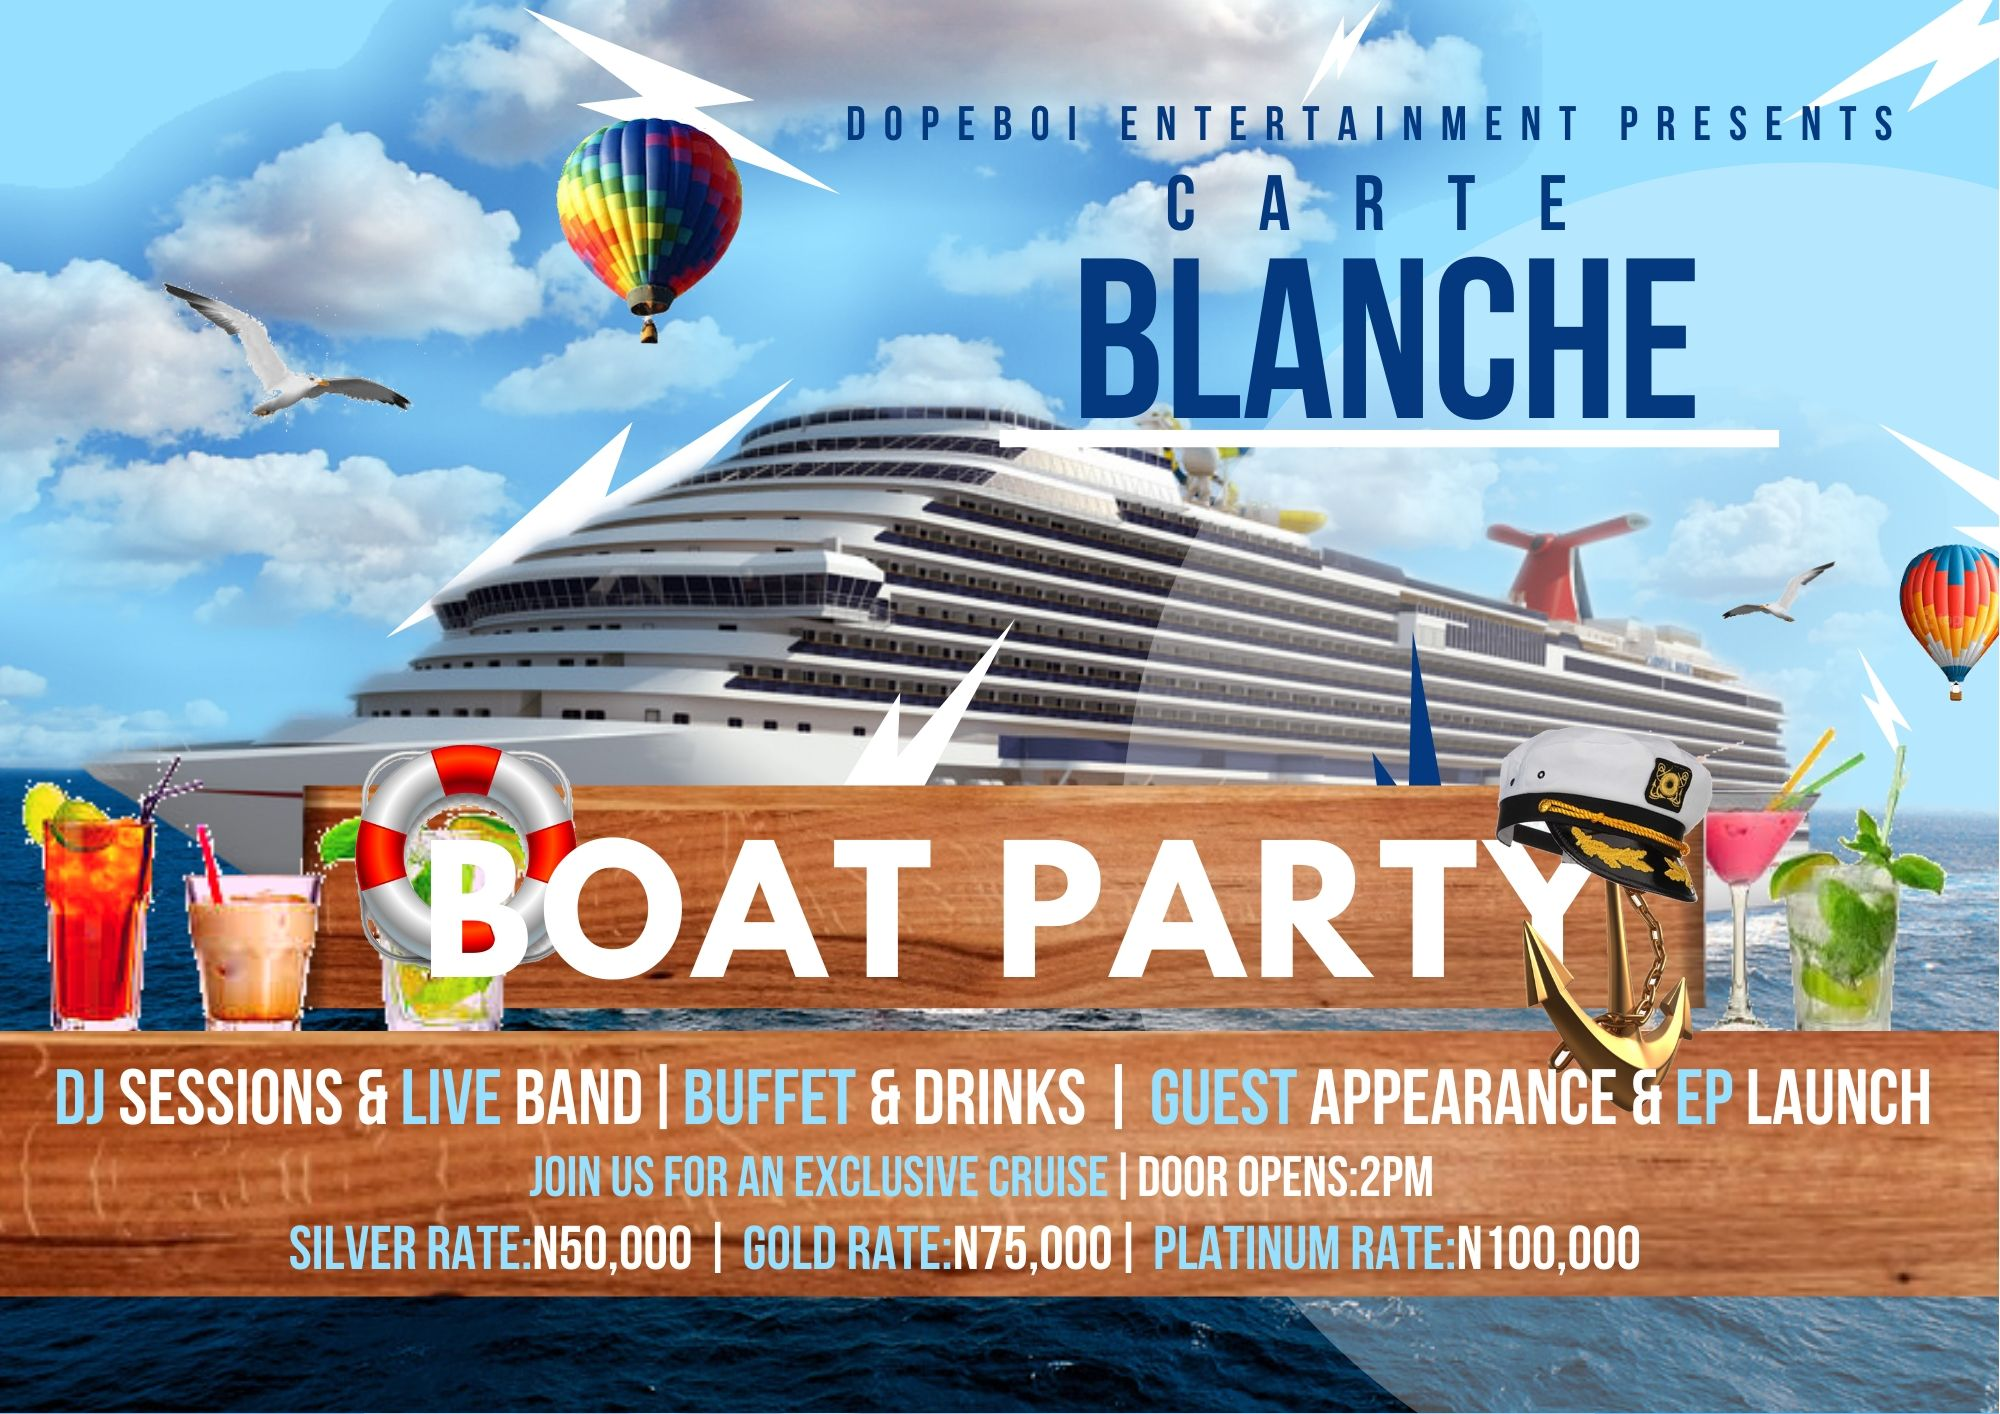 EVENT: CARTE BLANCHE EXCLUSIVE CRUISE PARTY